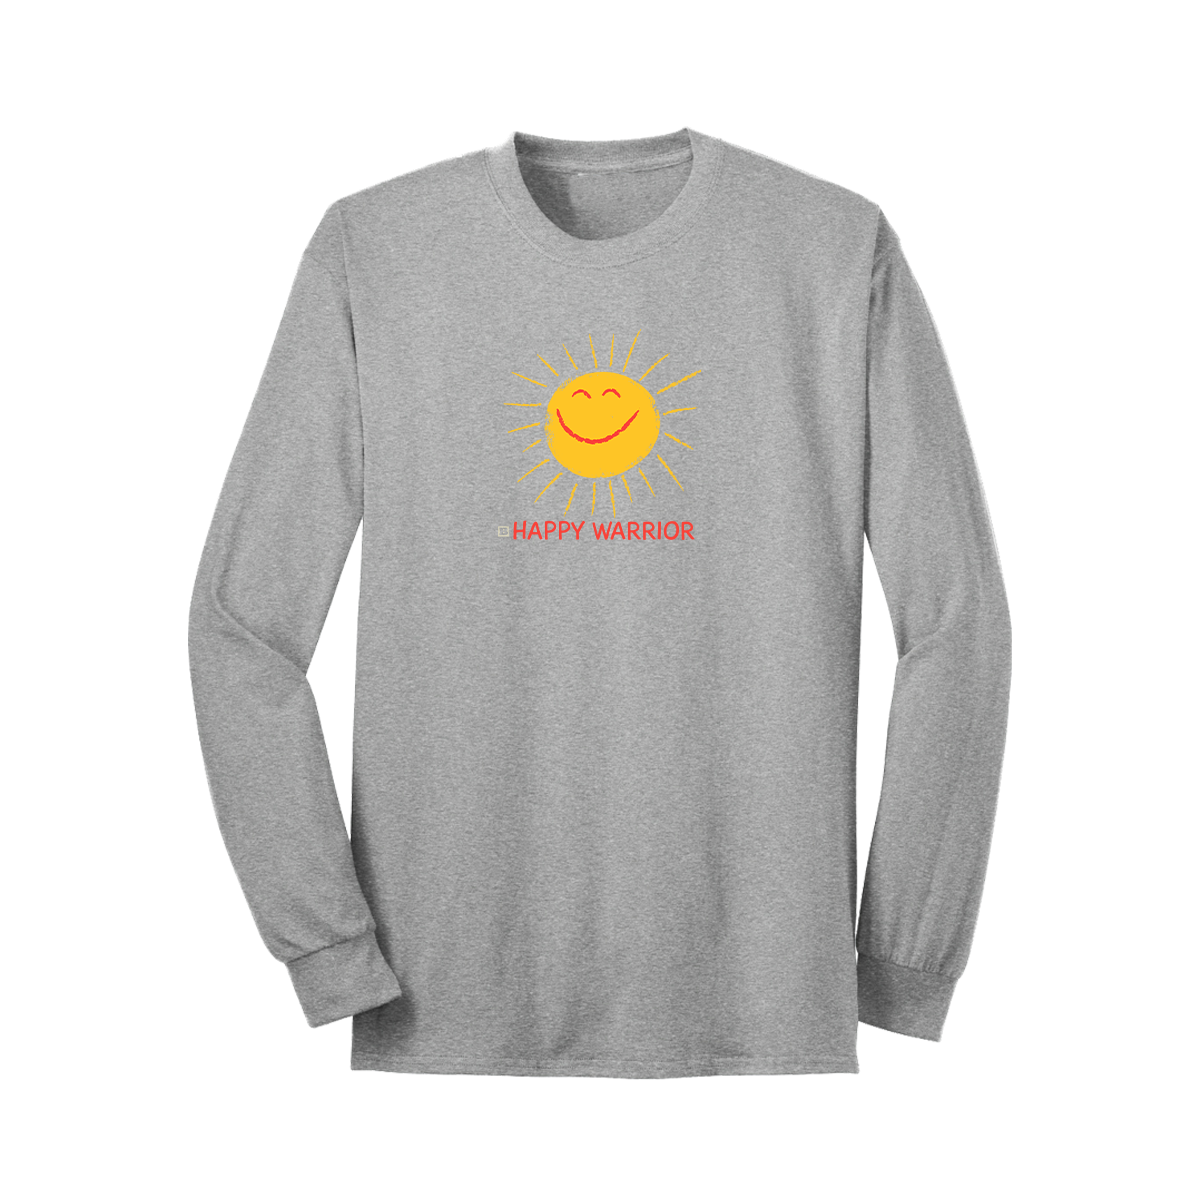 Happy Warrior Long Sleeve T-Shirt - Grey